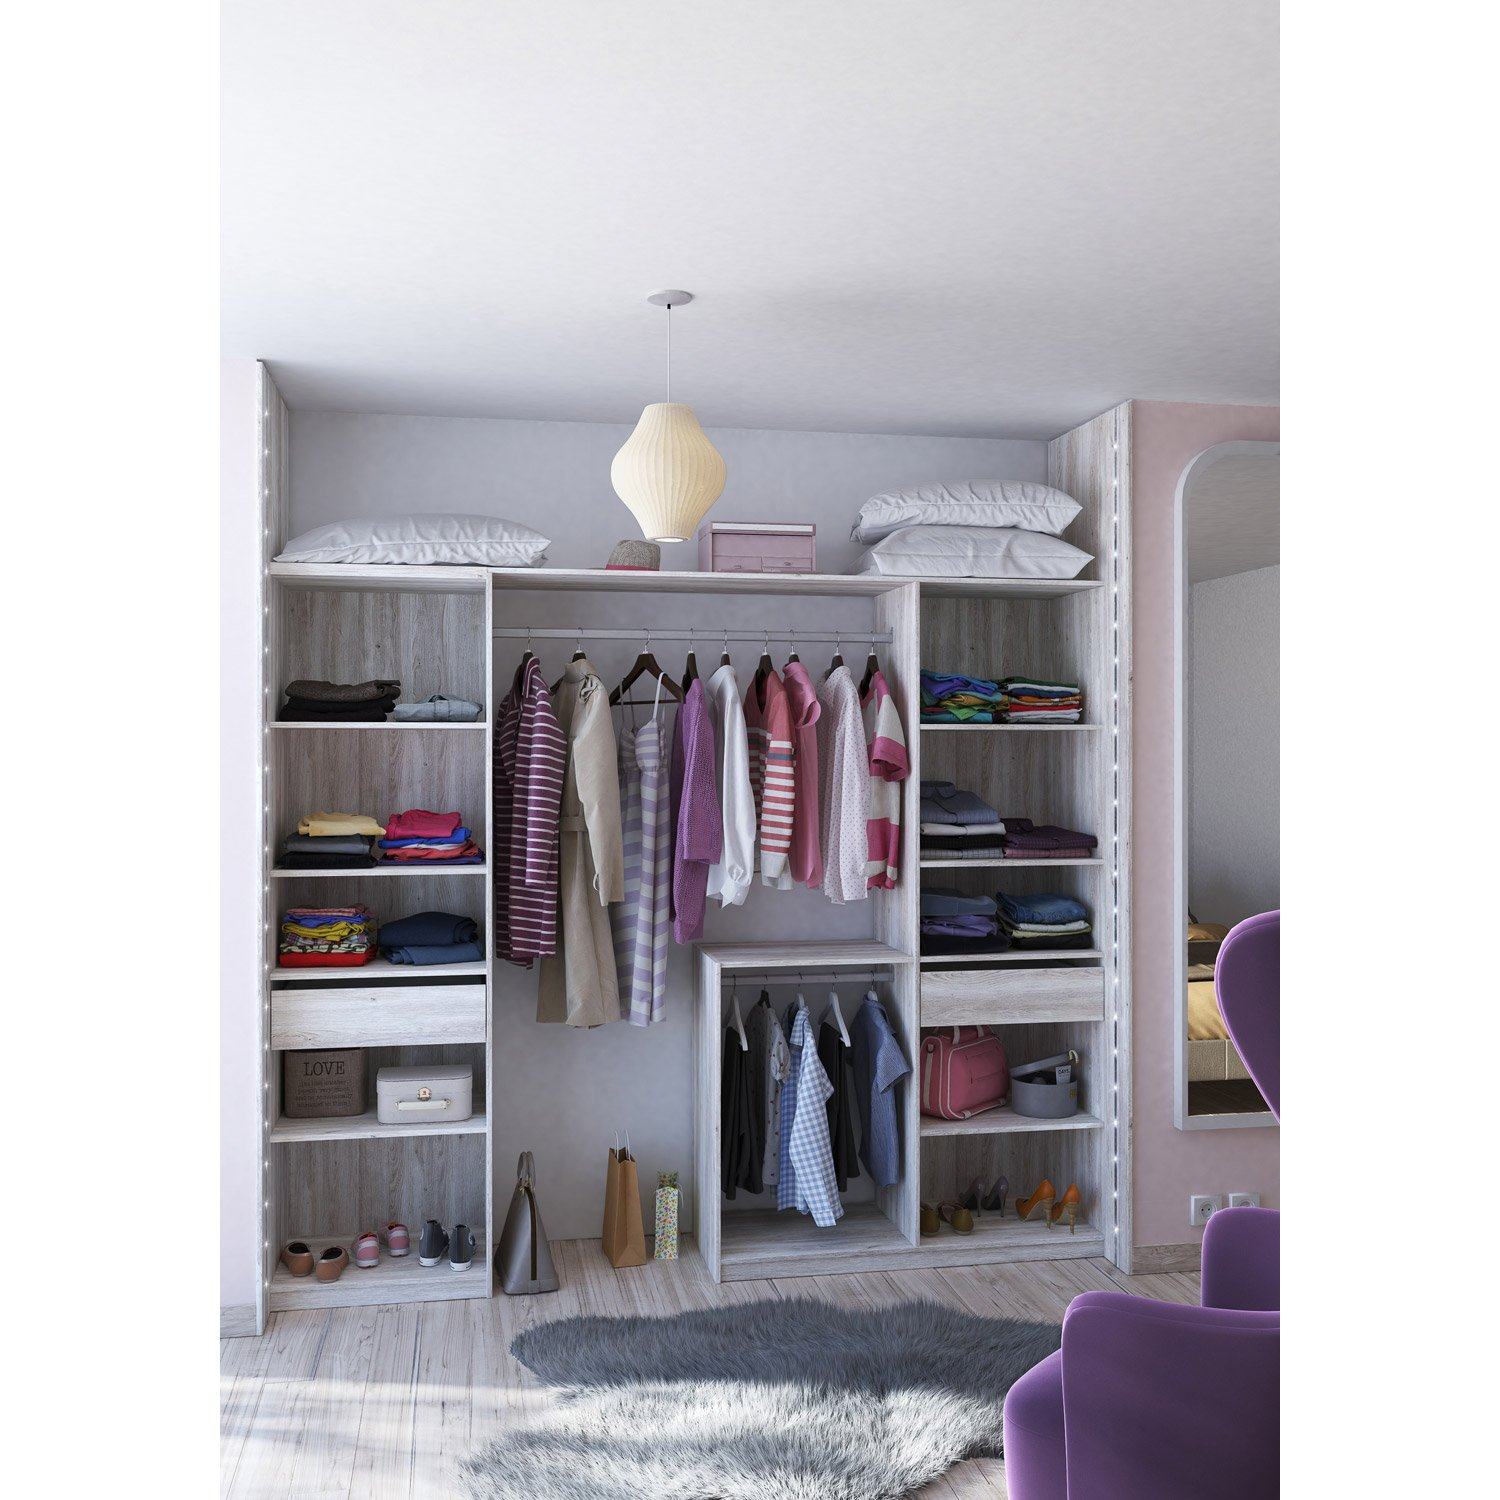 Dressing spaceo home gris dressing leroy merlin - Dressing en kit pas cher ...